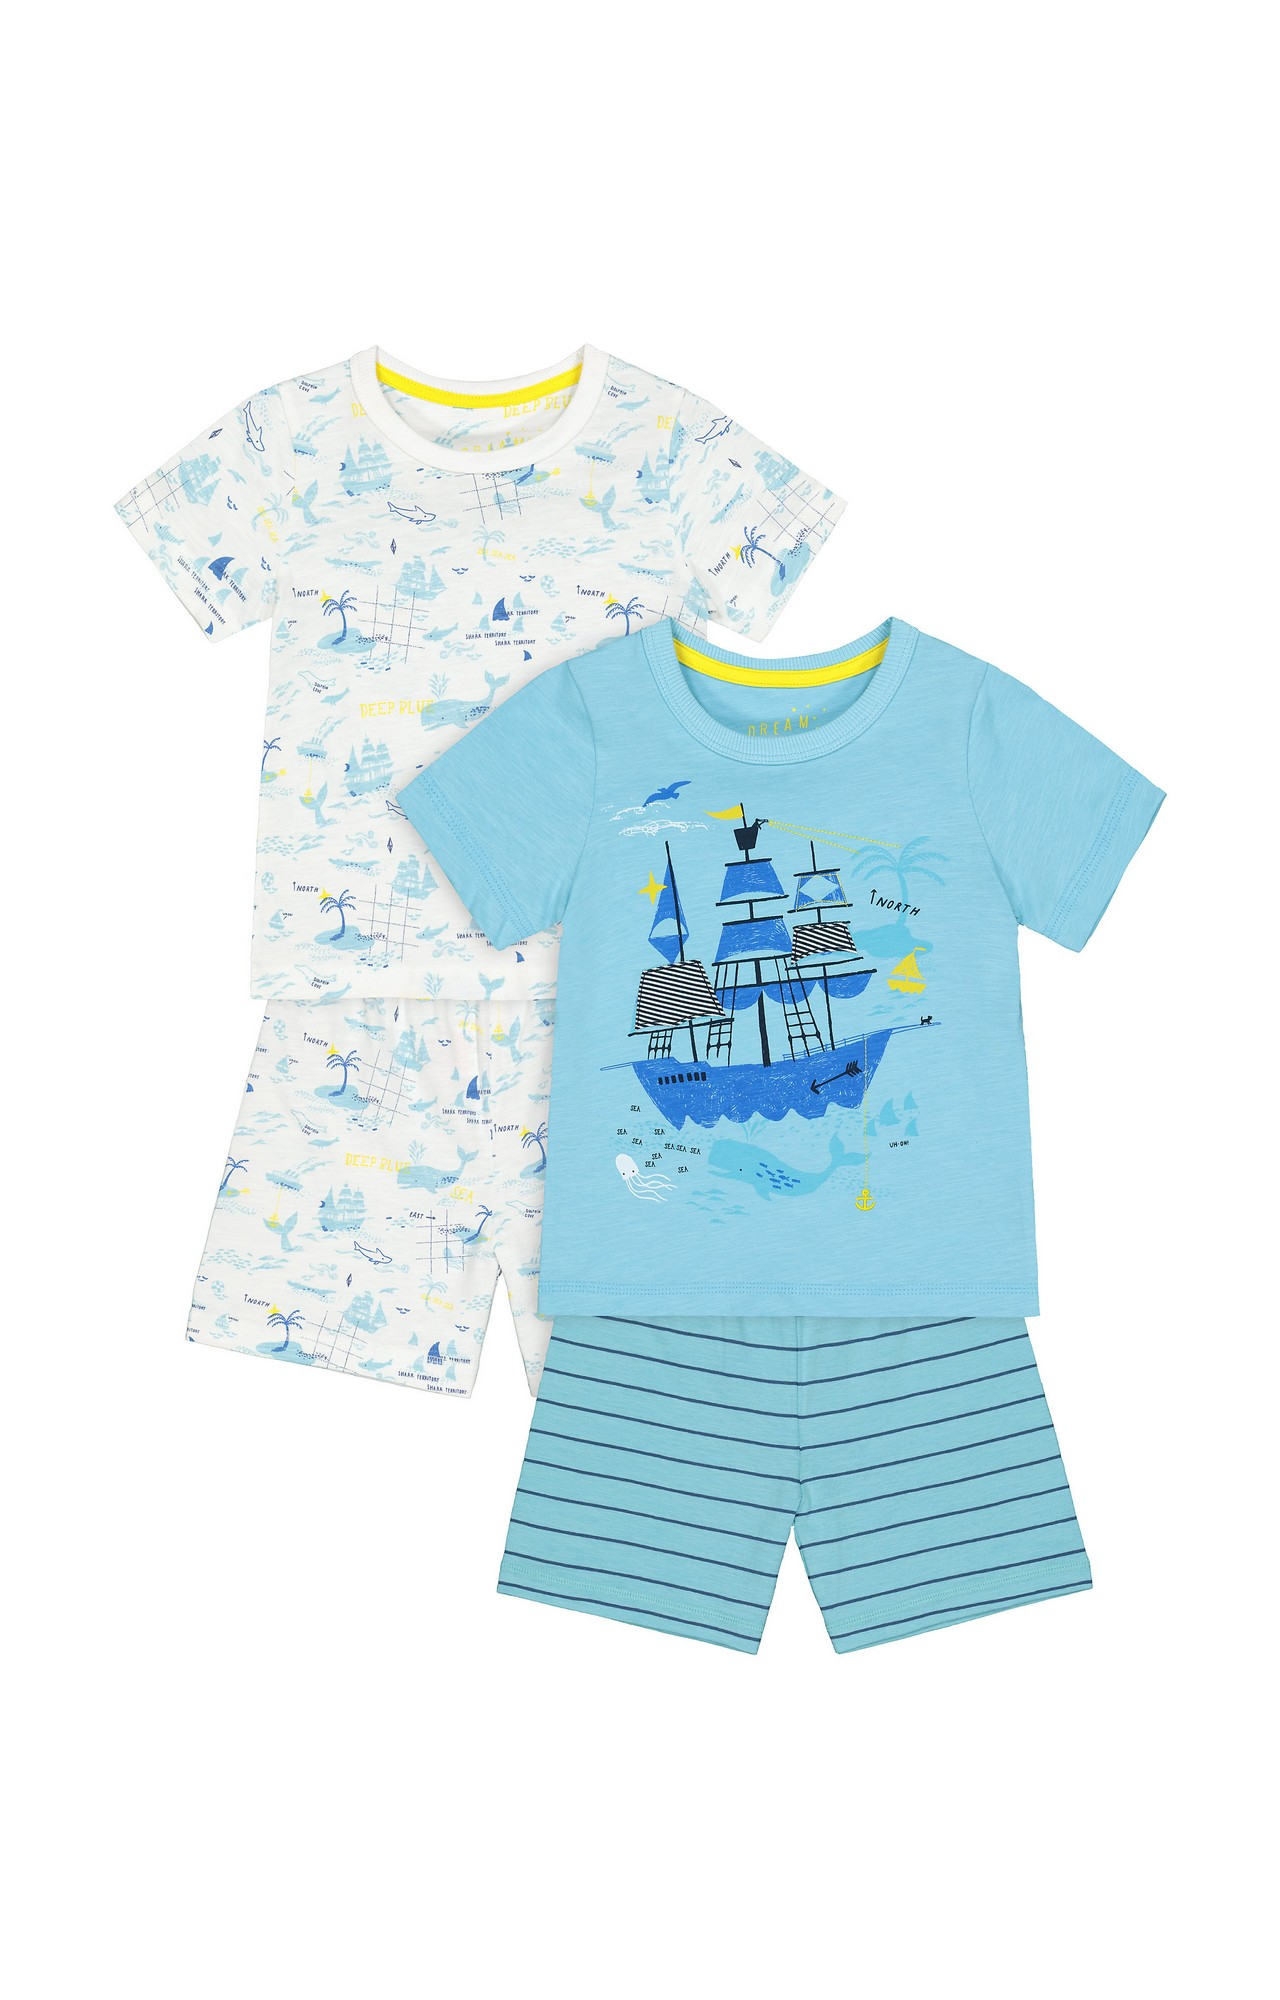 Mothercare | Multicoloured Printed Pyjamas - Pack of 2